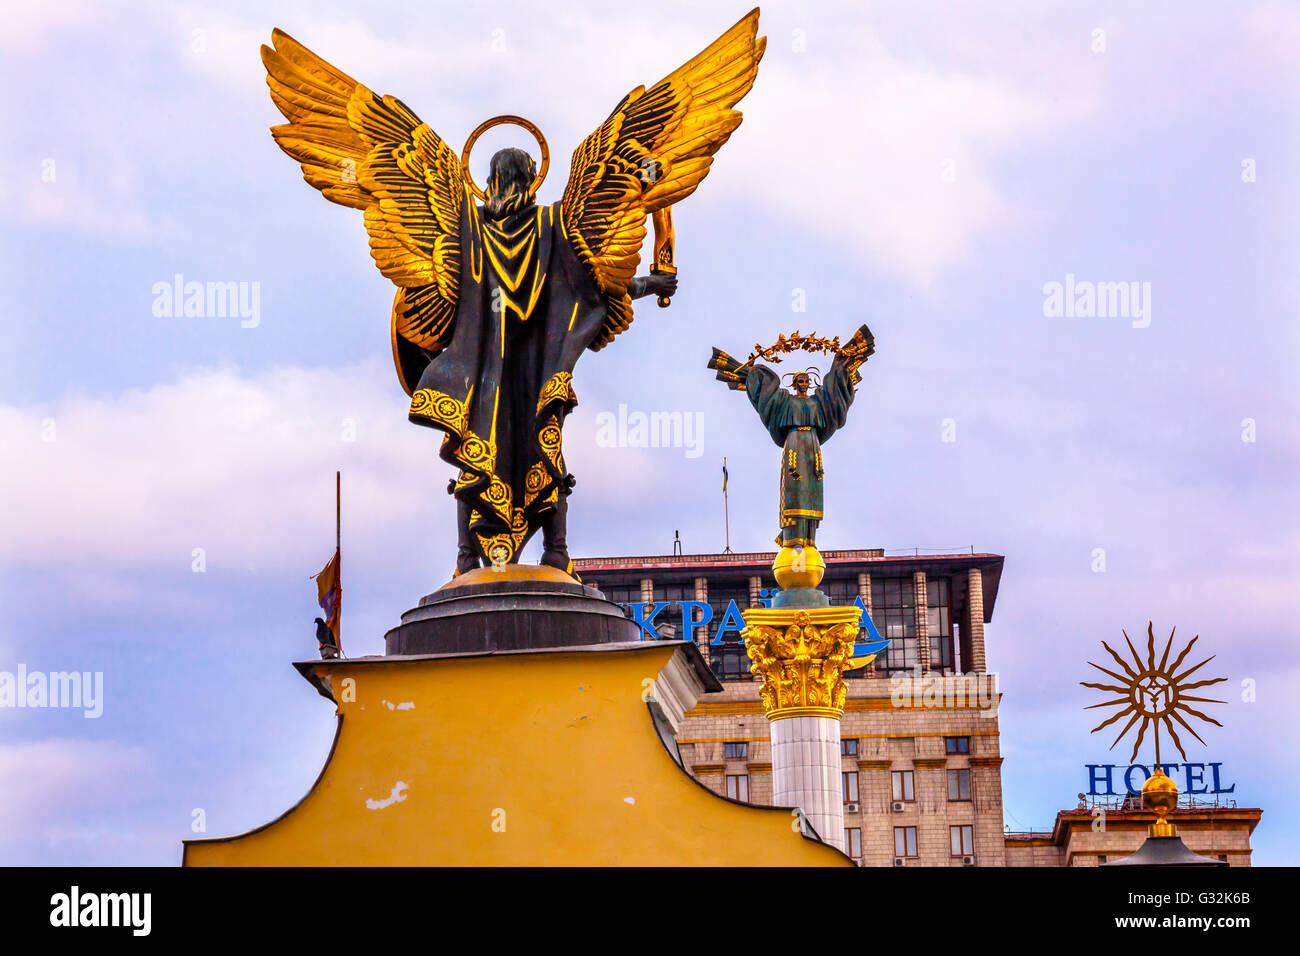 Laches Gate Saint Michael Peasant Girl Slavic Goddess Berehynia Statue on top Independence Monument, Symbol of Ukraine - Stock Image